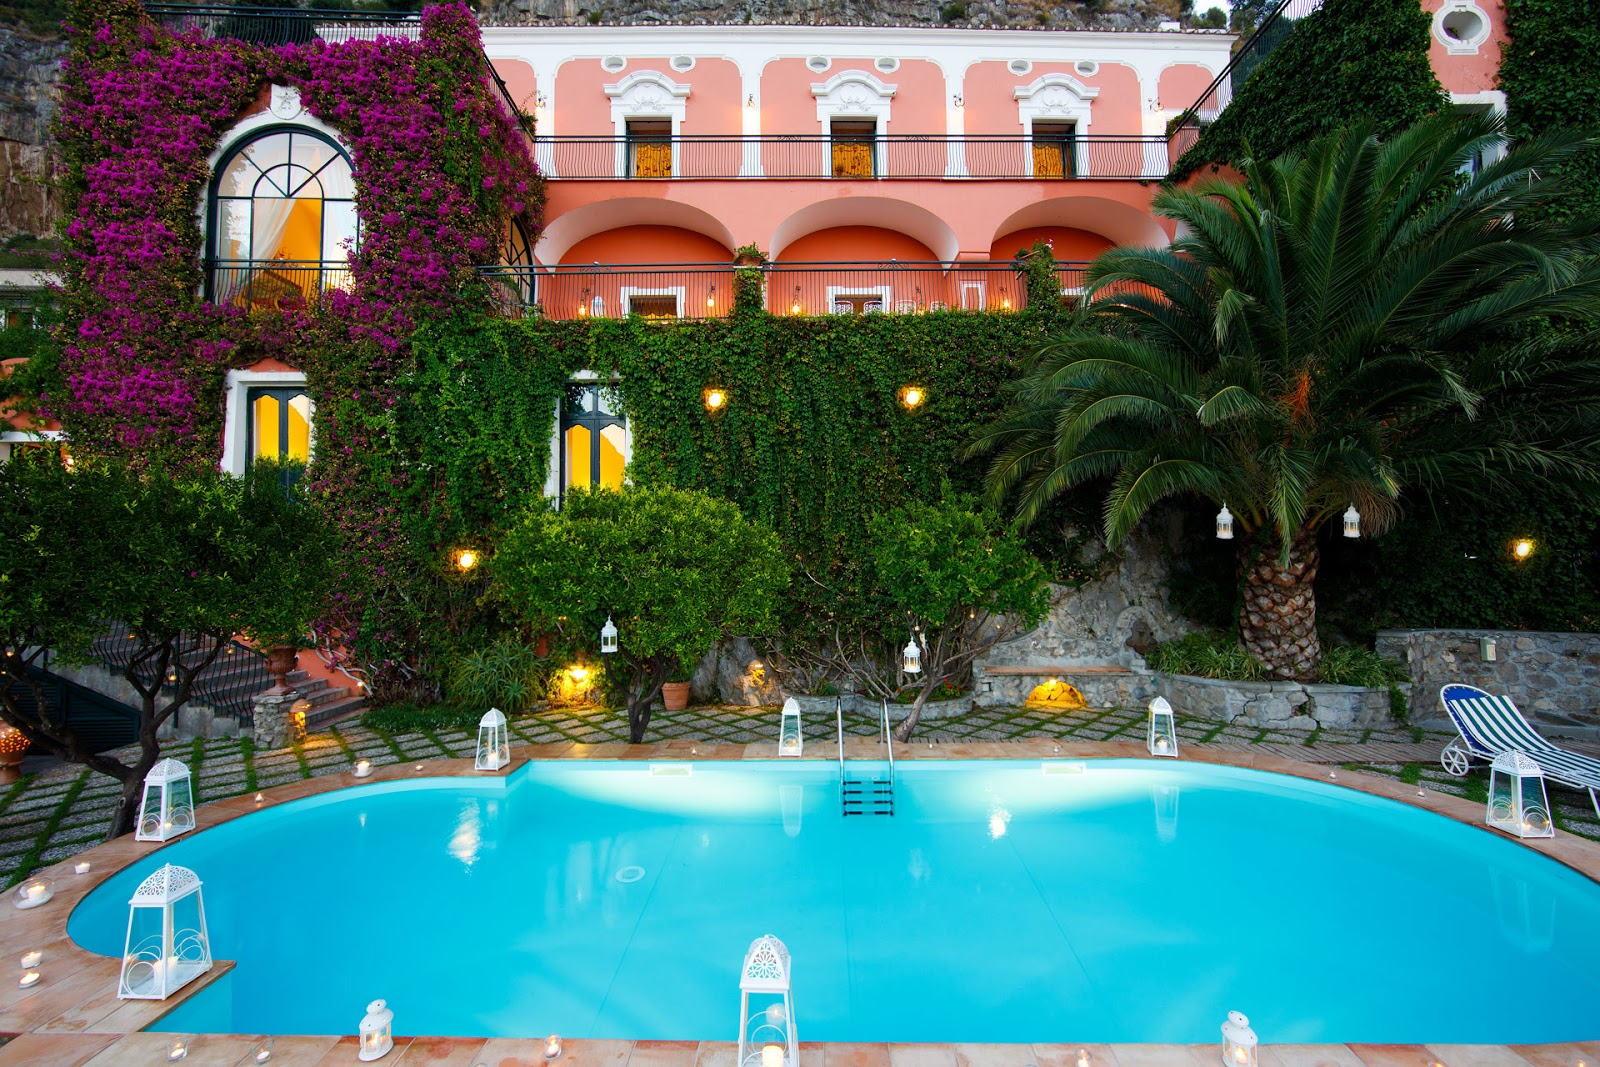 amalfi senior personals Senior care » travel » contact amalfi coast villa cimbrone the best way to reach villa cimbrone, which can be found off of amalfi's main highway, is by car.